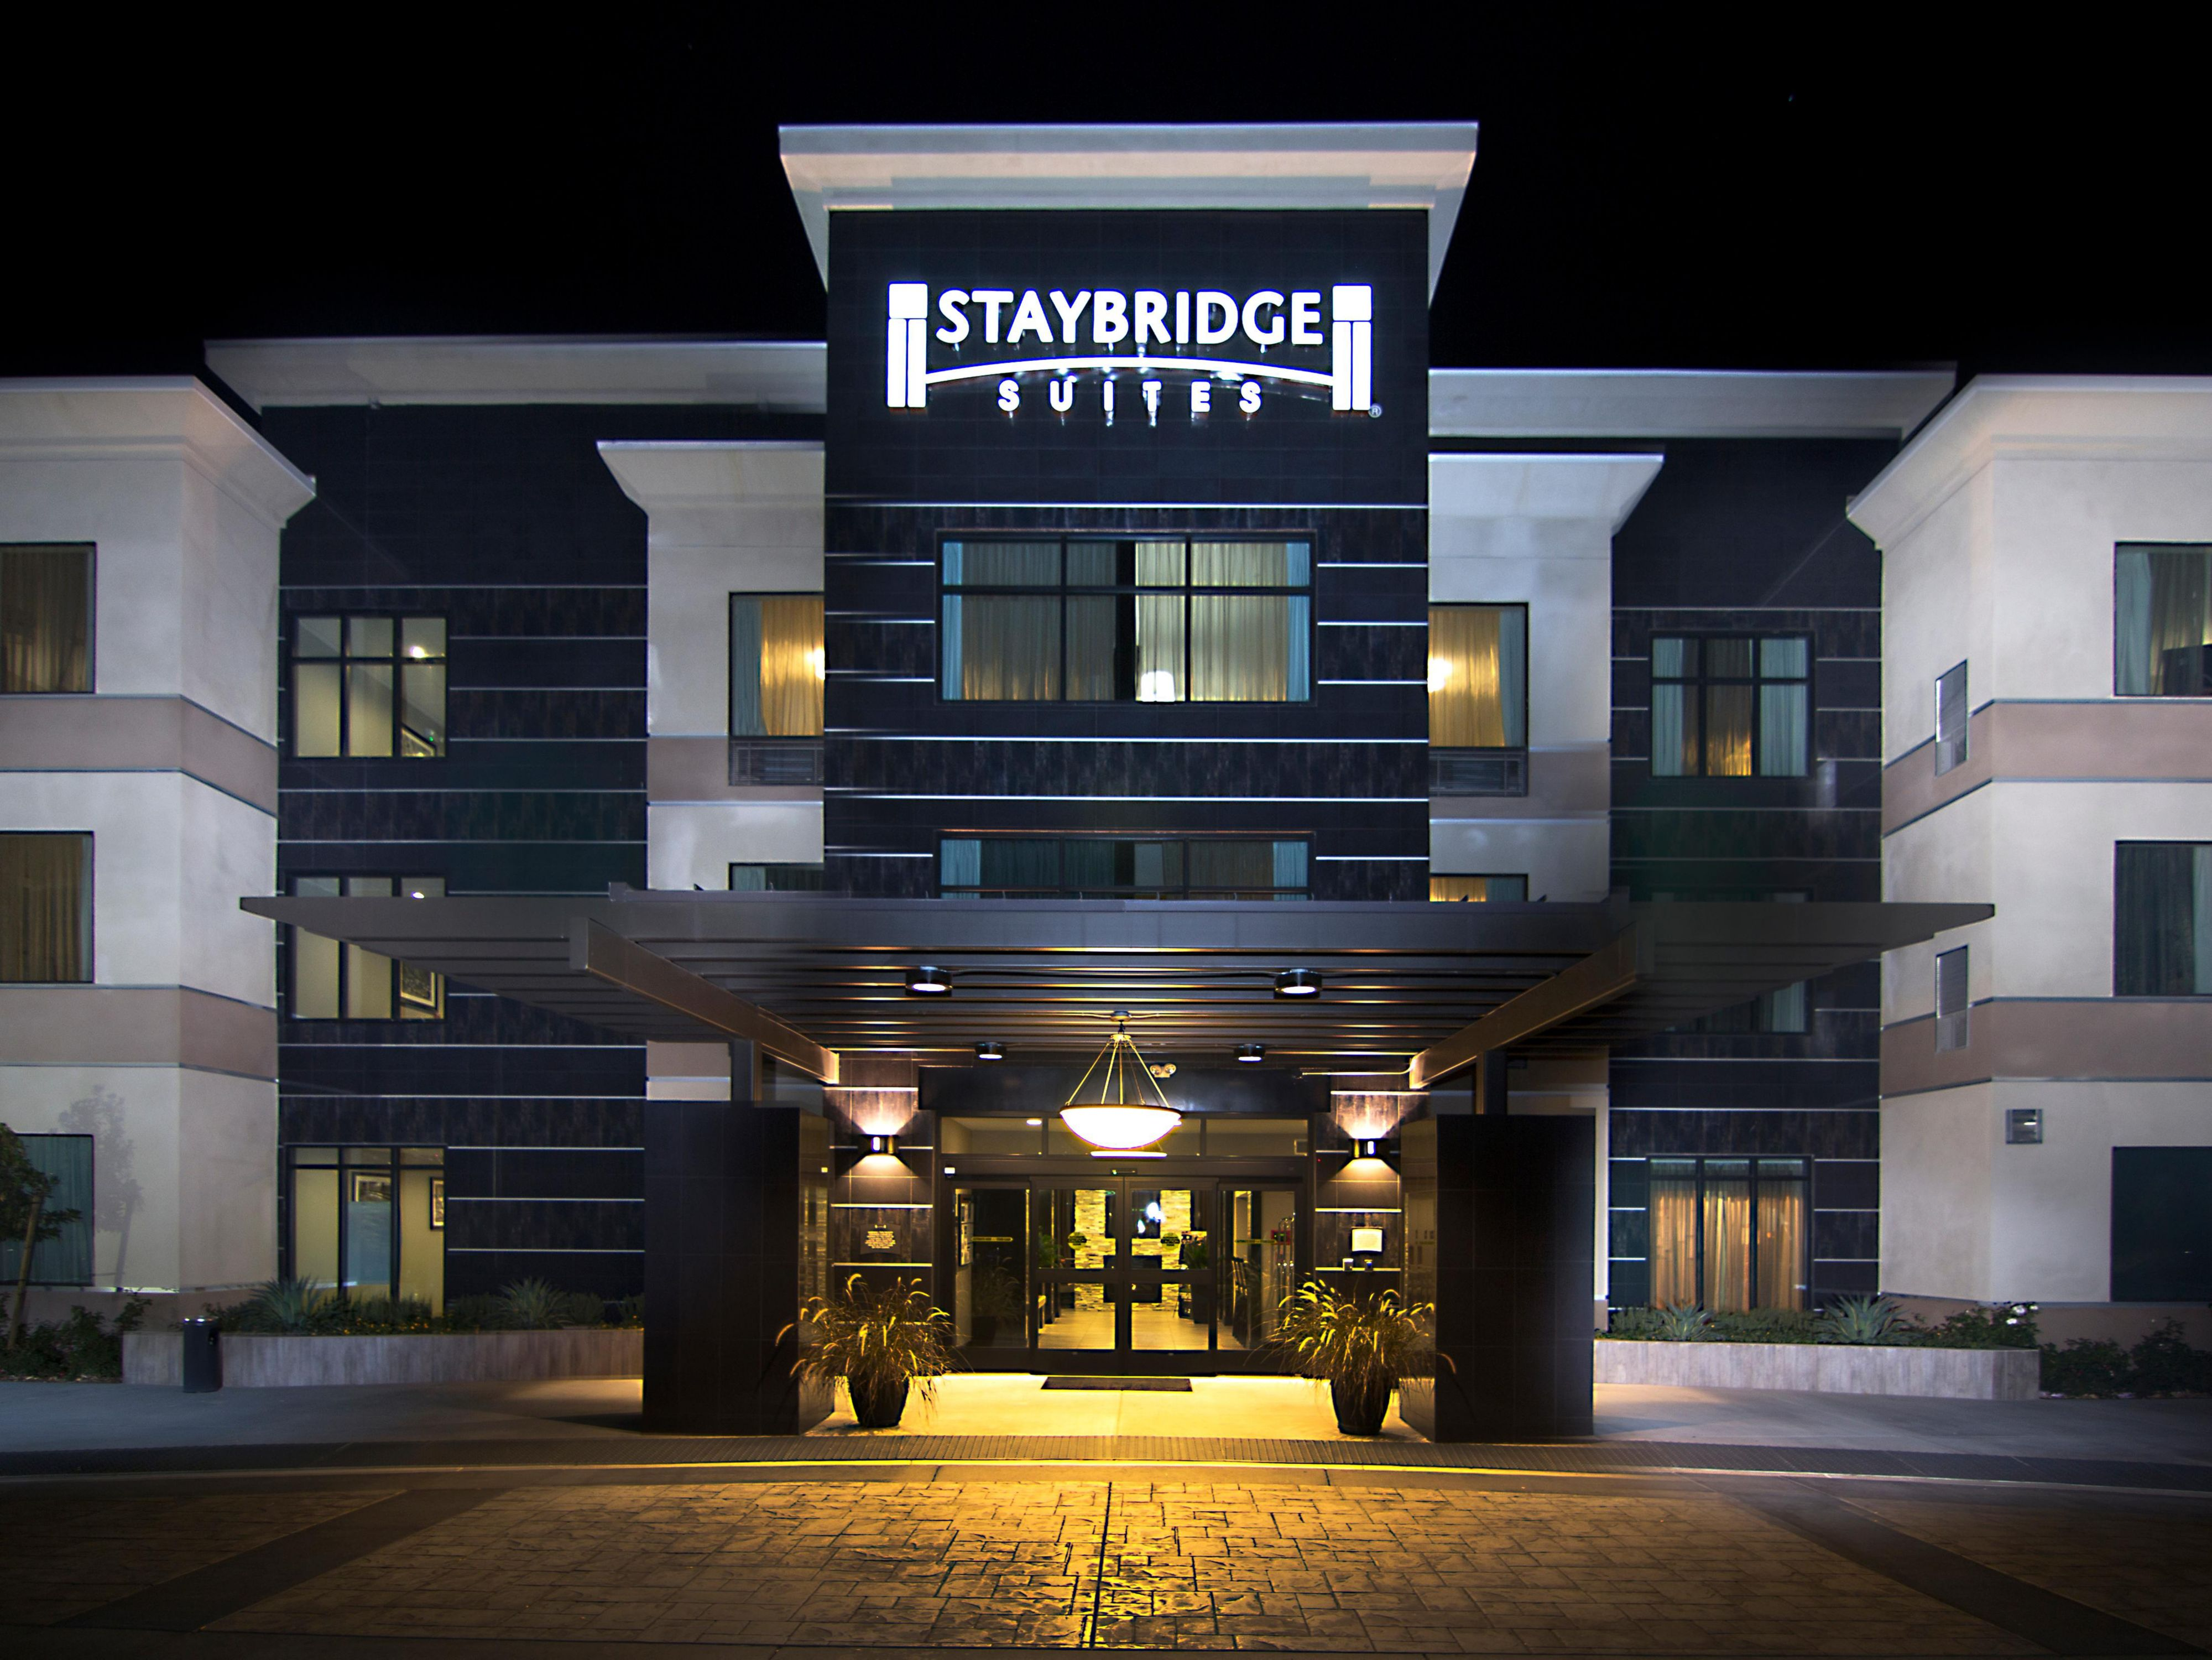 Carlsbad Hotels Staybridge Suites Extended Stay Hotel In California